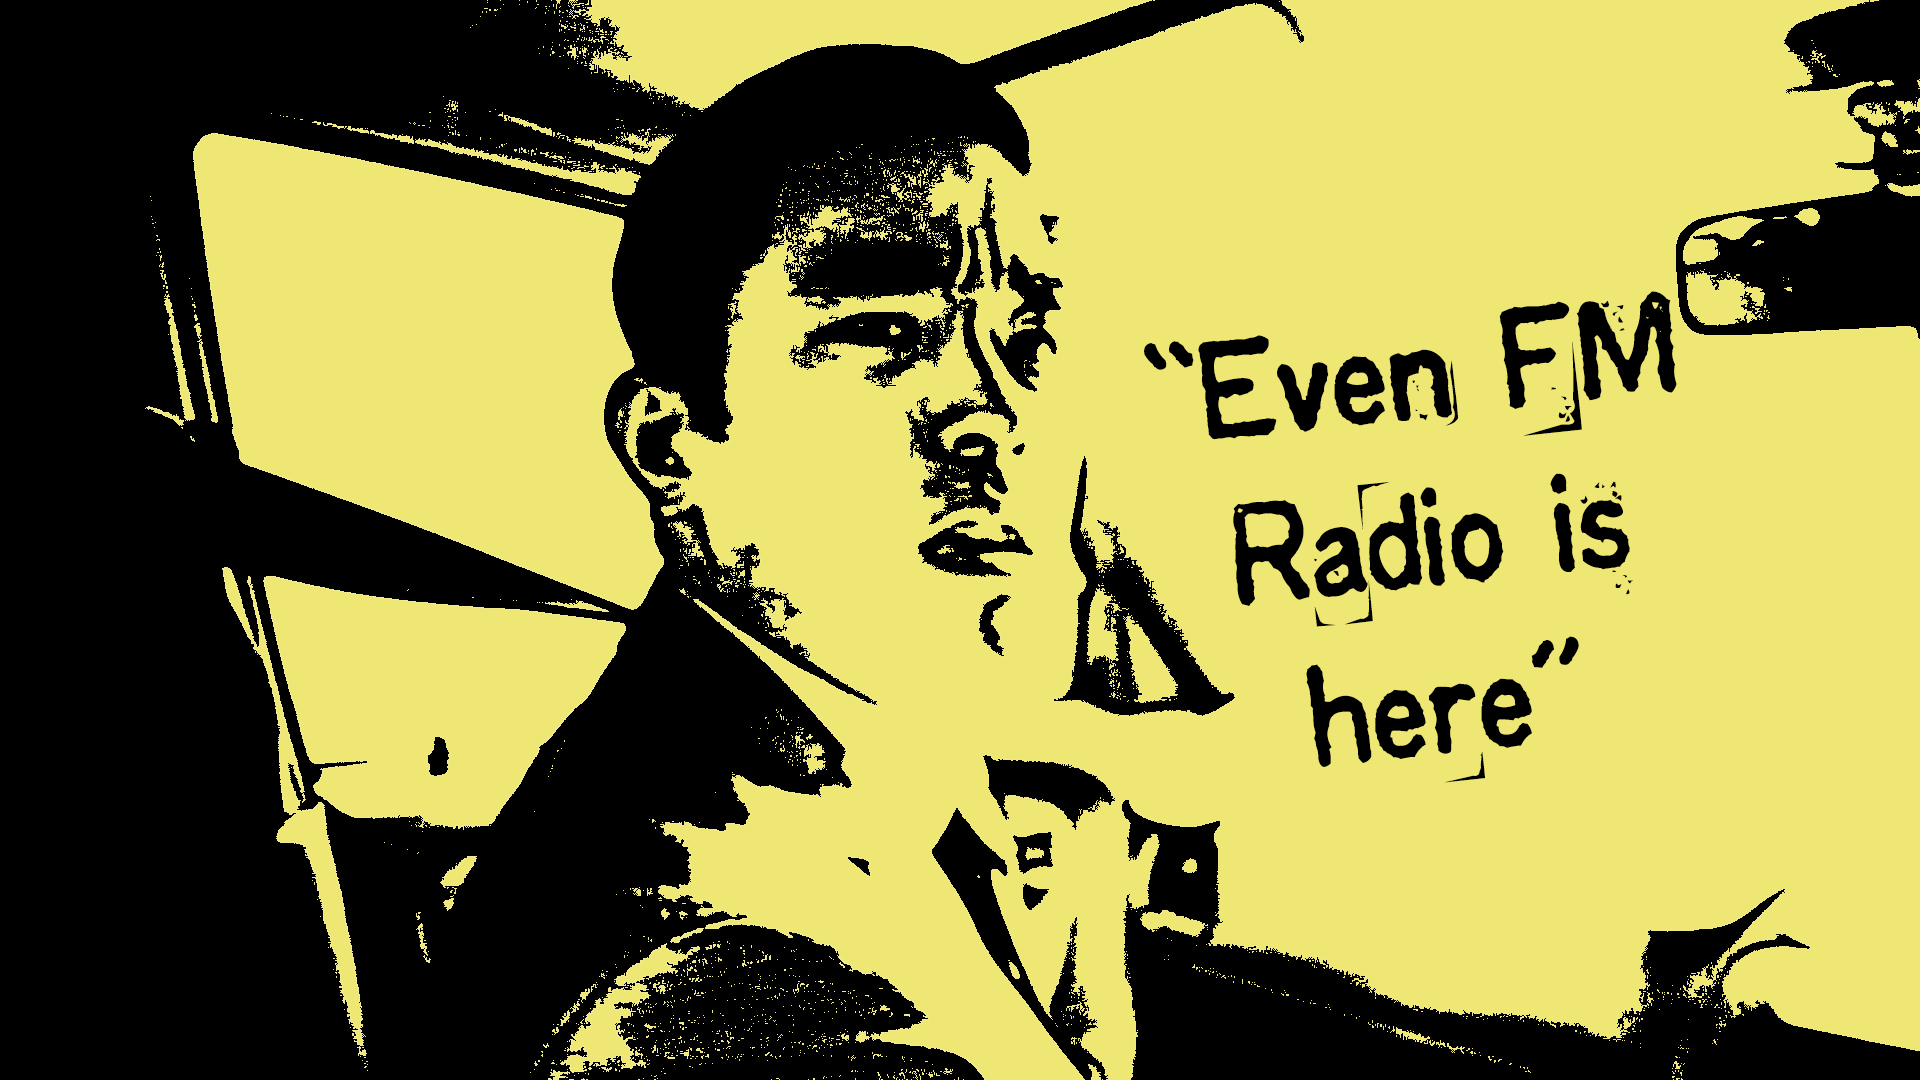 even FM radio is here.jpg